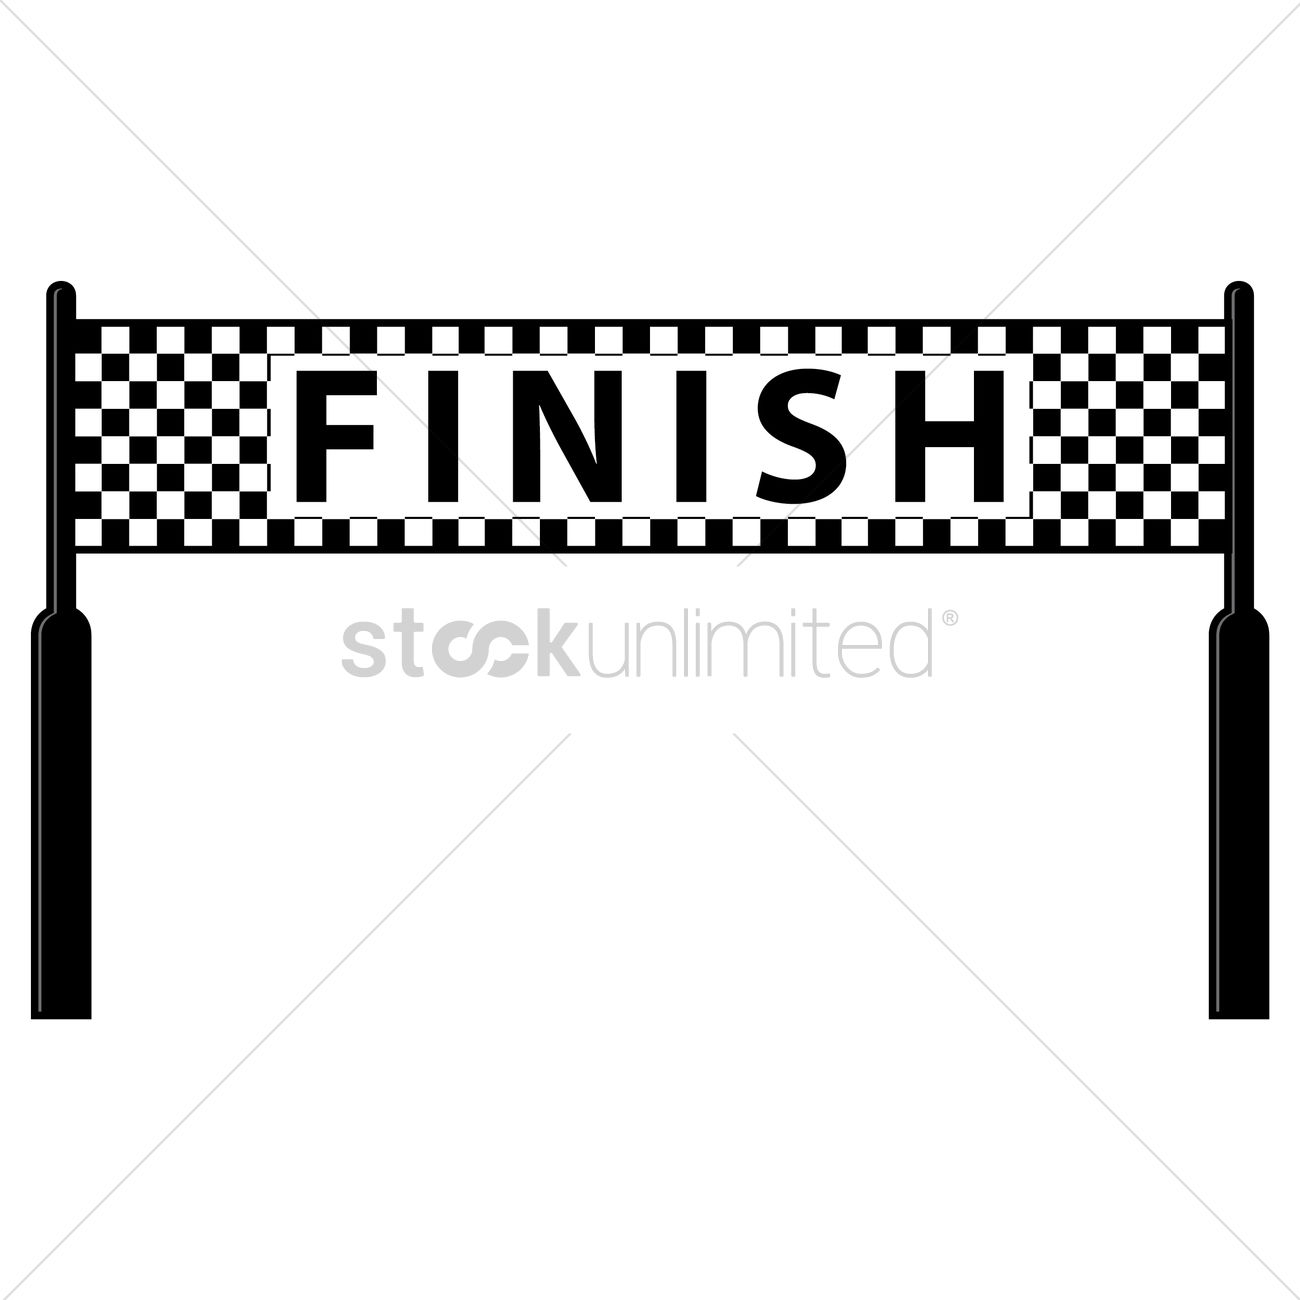 finish line vector image 1479002 stockunlimited Free Fireworks Clip Art Free Patriotic Clip Art